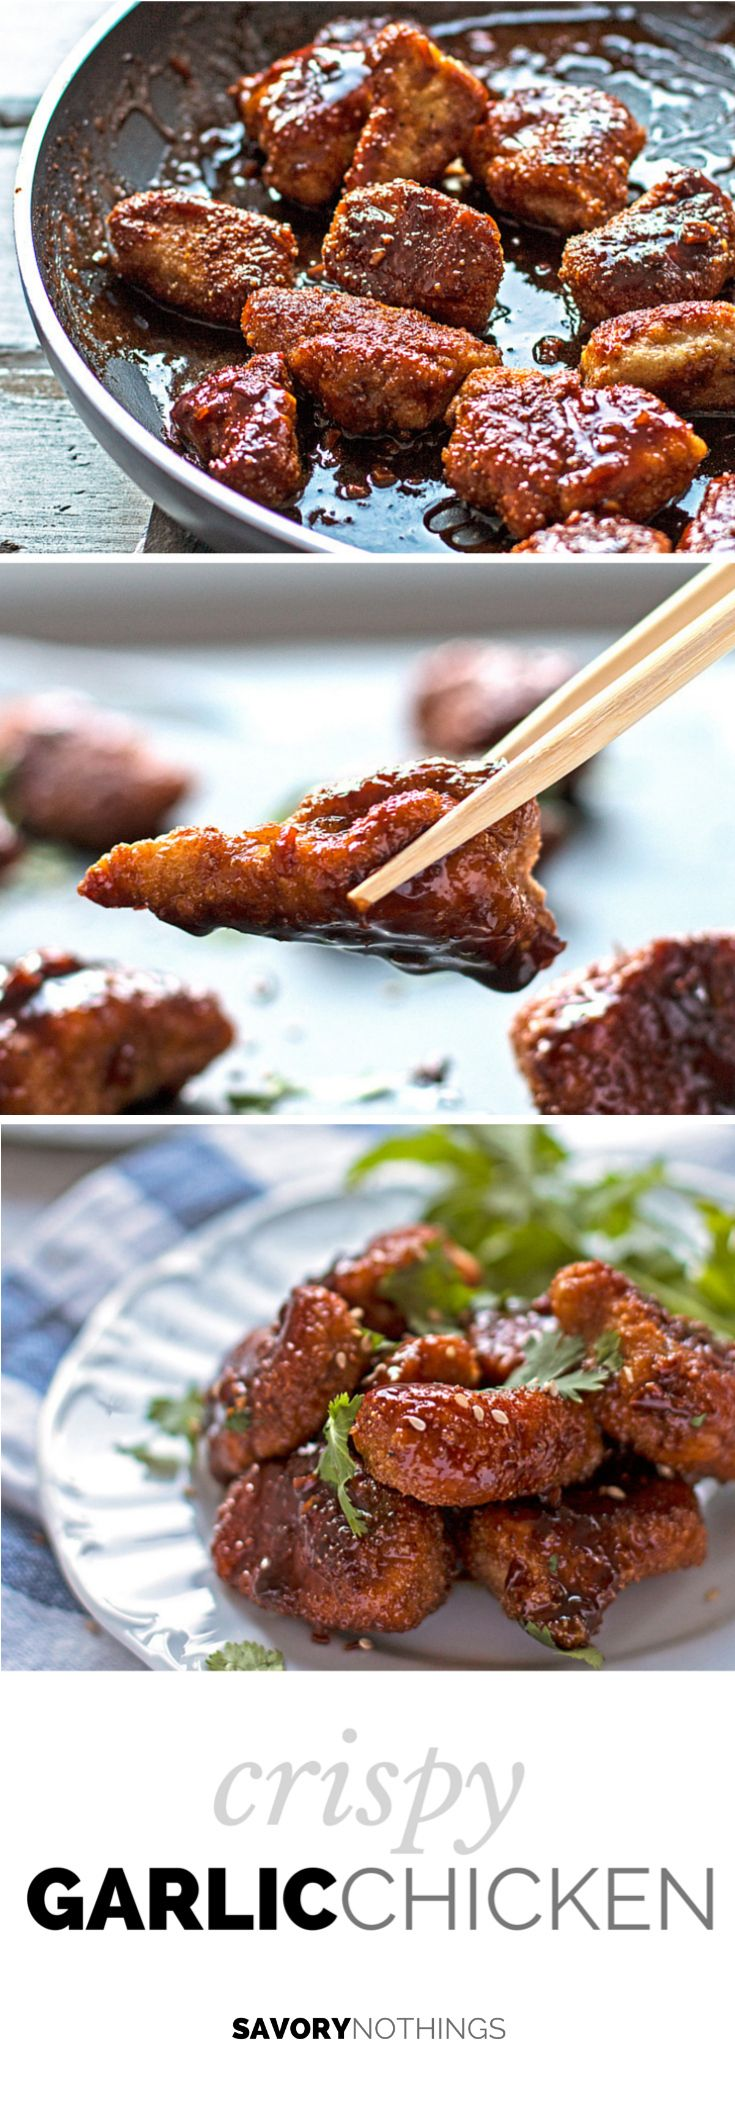 Crispy Garlic Chicken  [ PropFunds.com ] #food #funds #saving